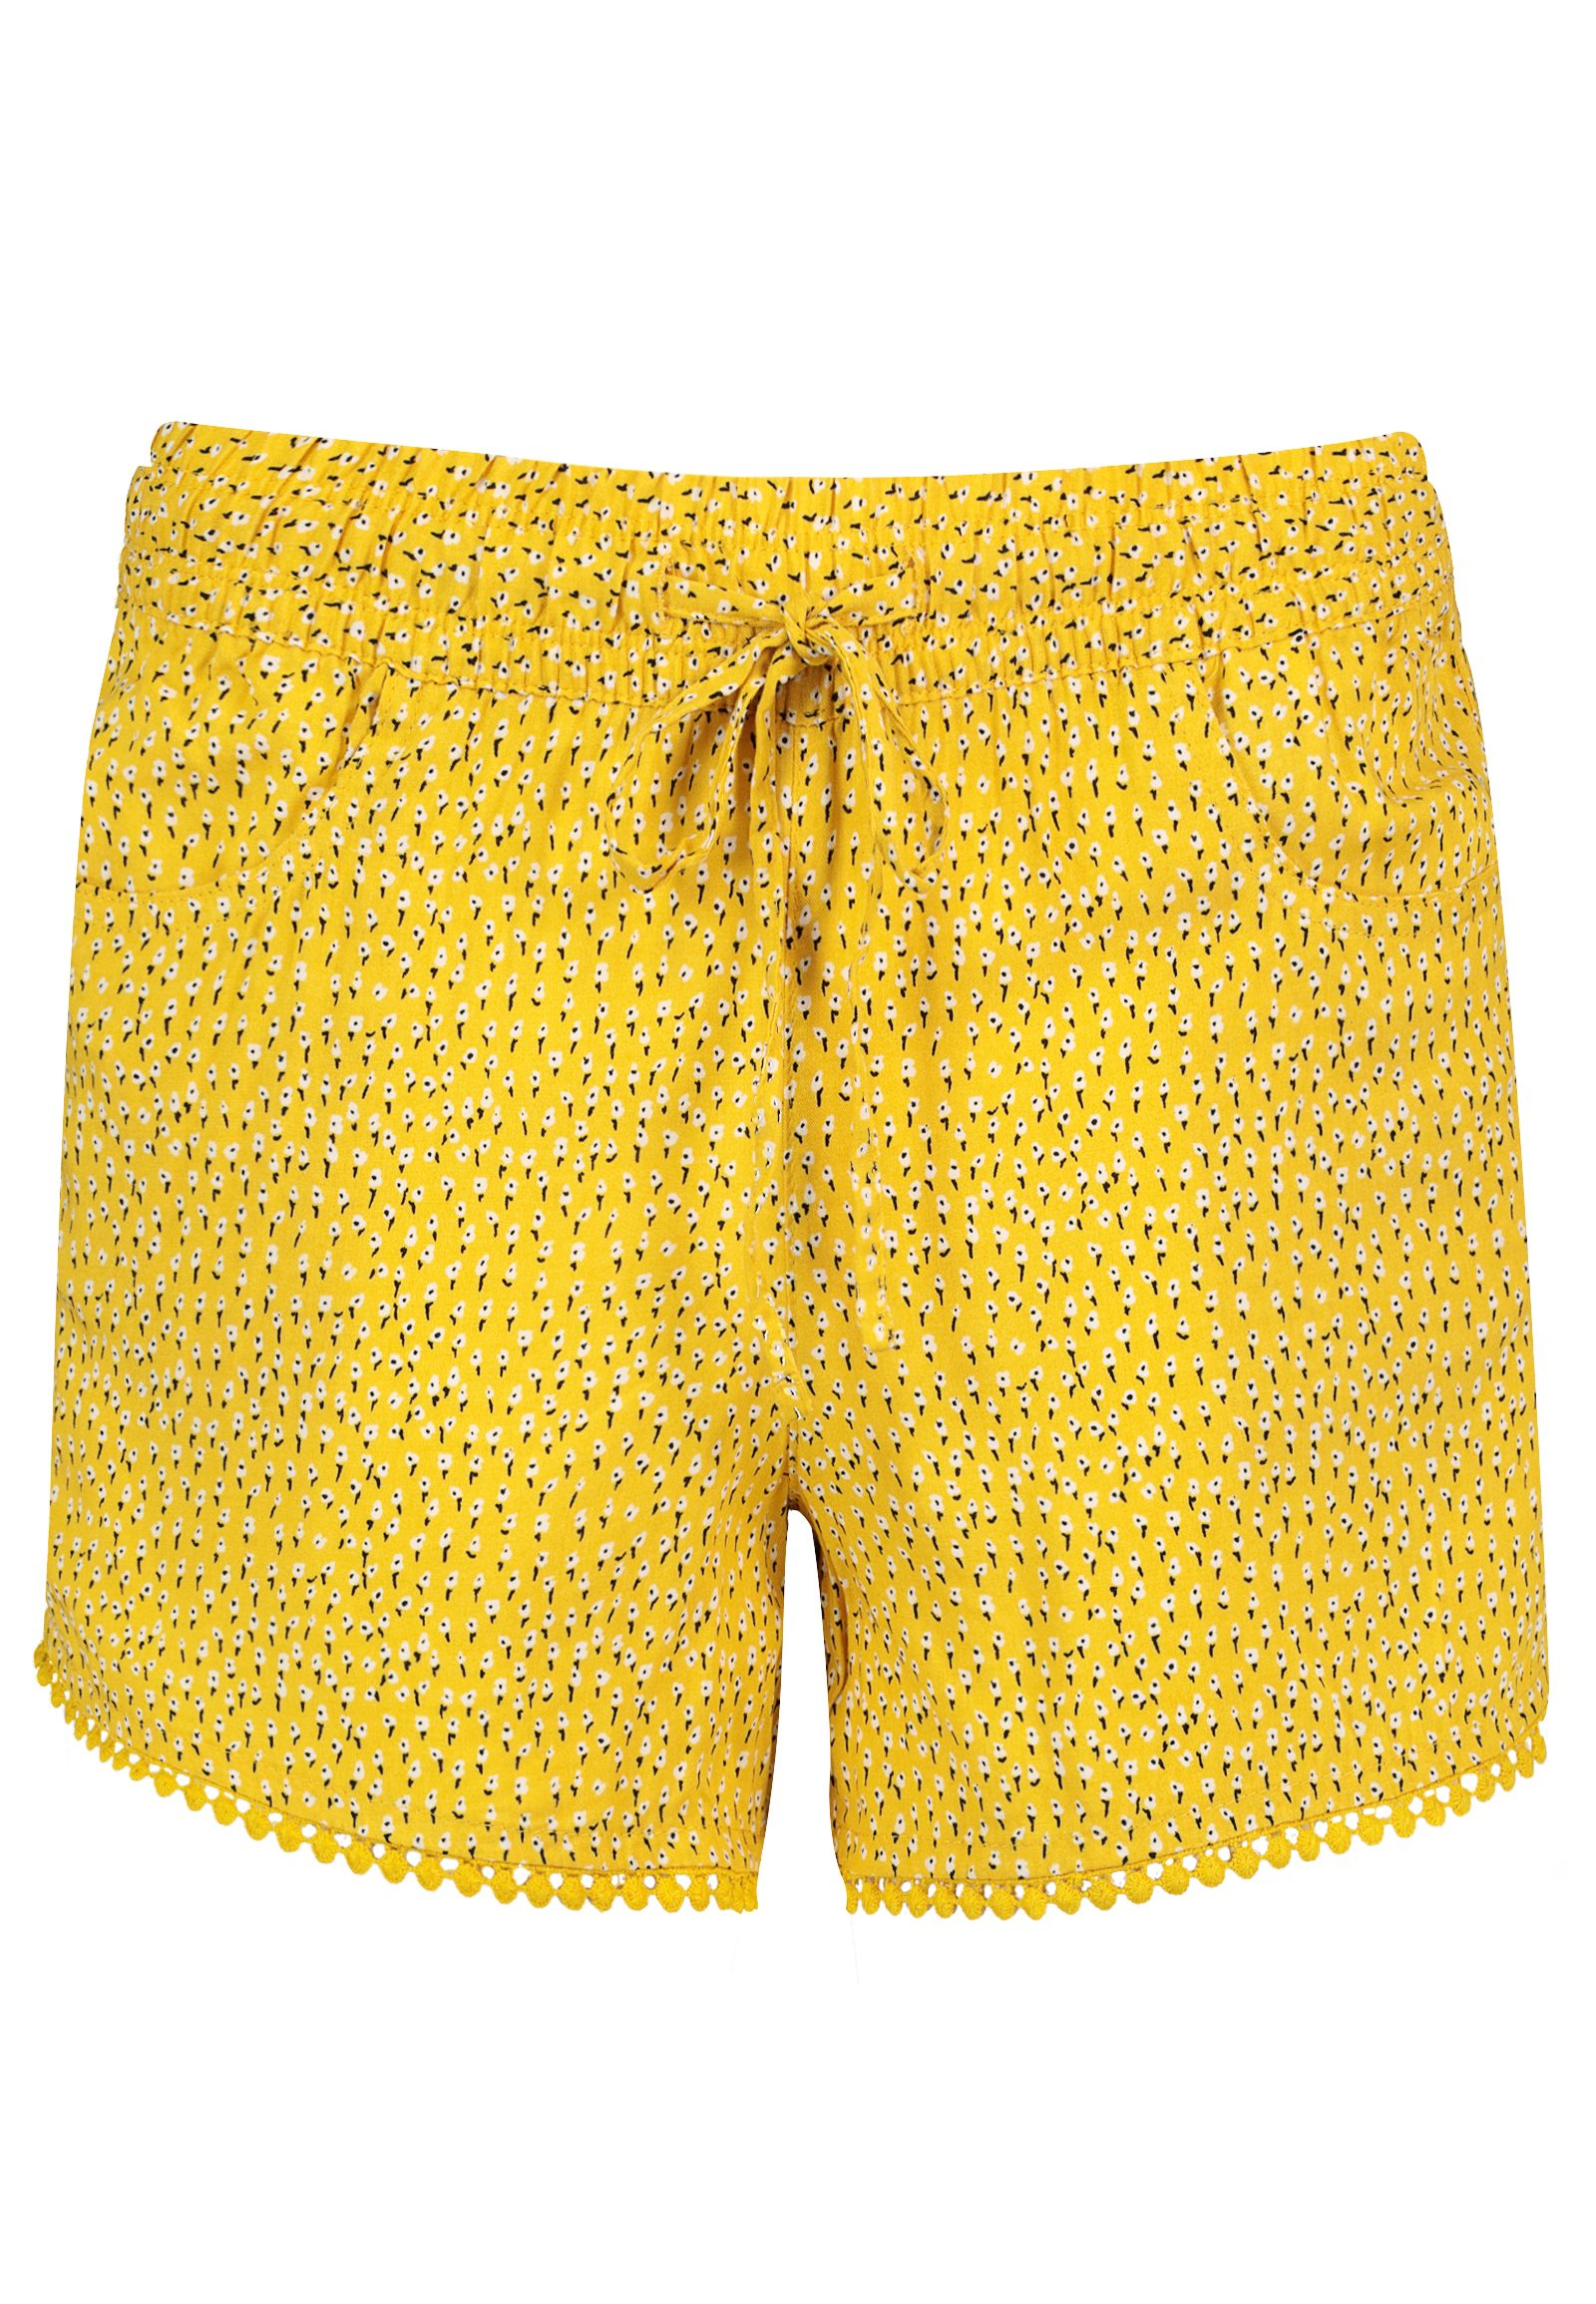 Hosen - Shorts mit Bommelborte › Fresh Made › gelb  - Onlineshop FASHION5